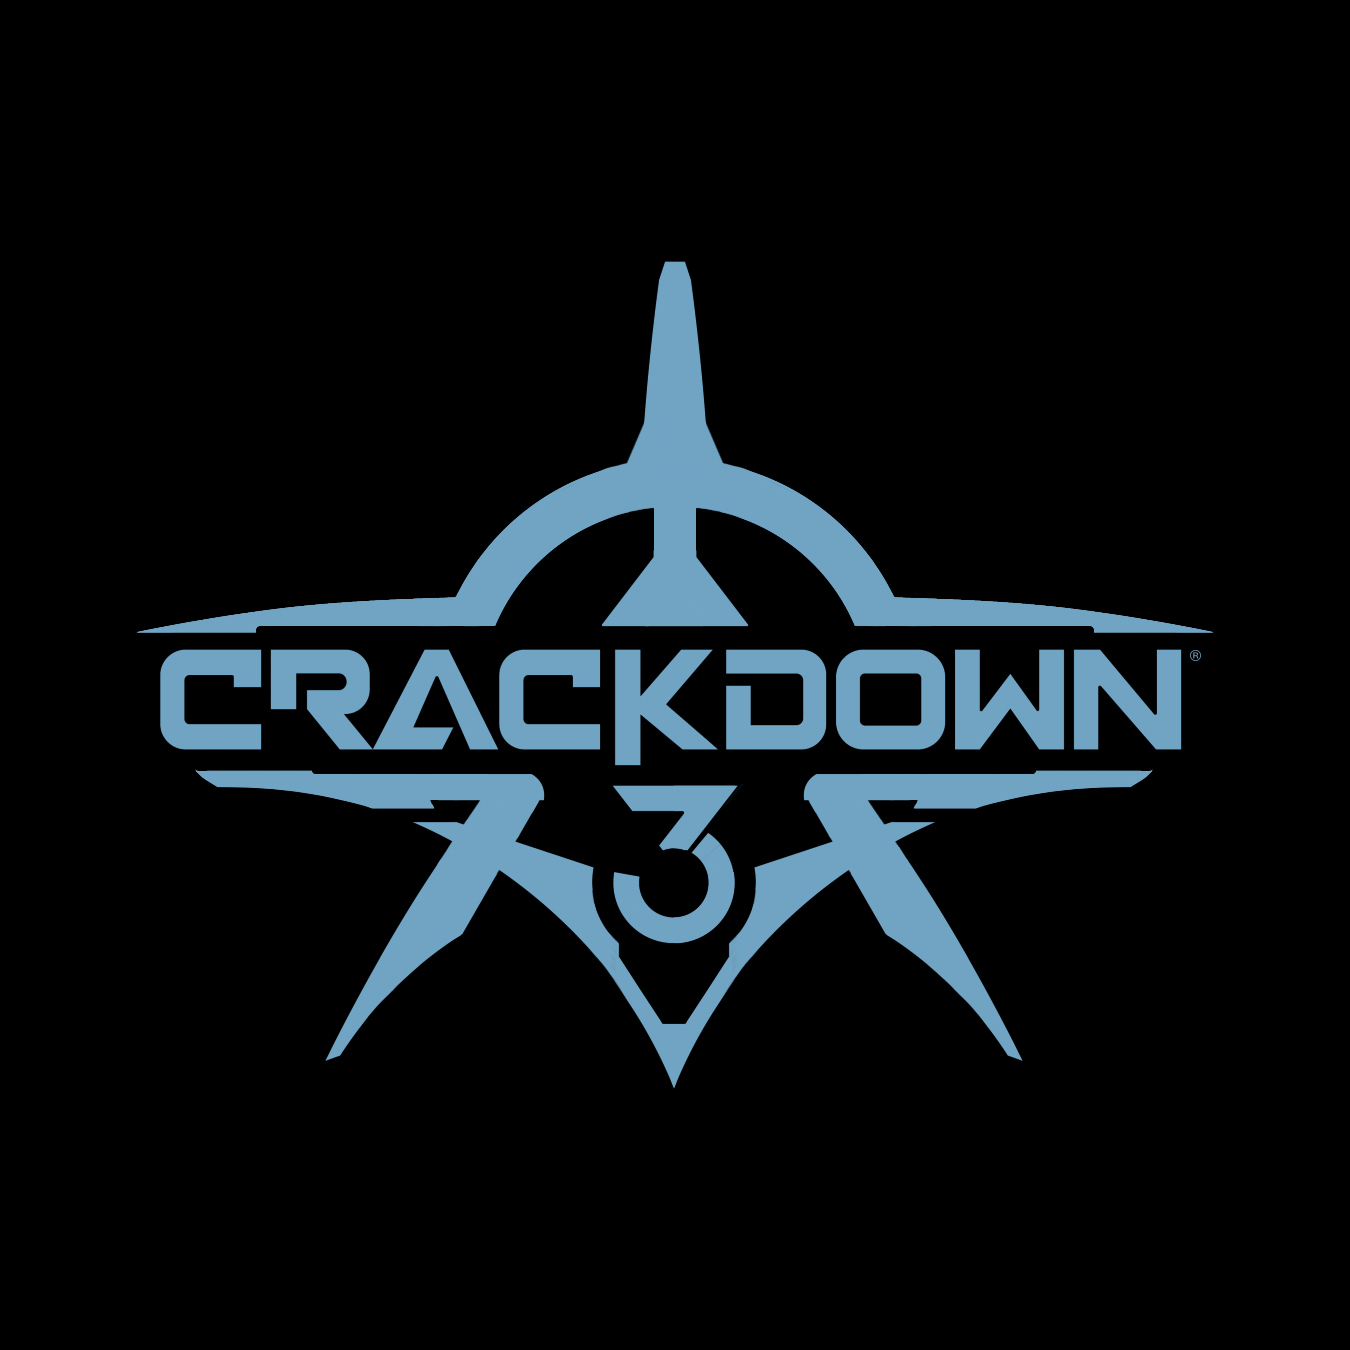 Crackdown 3 Small Blue and Black